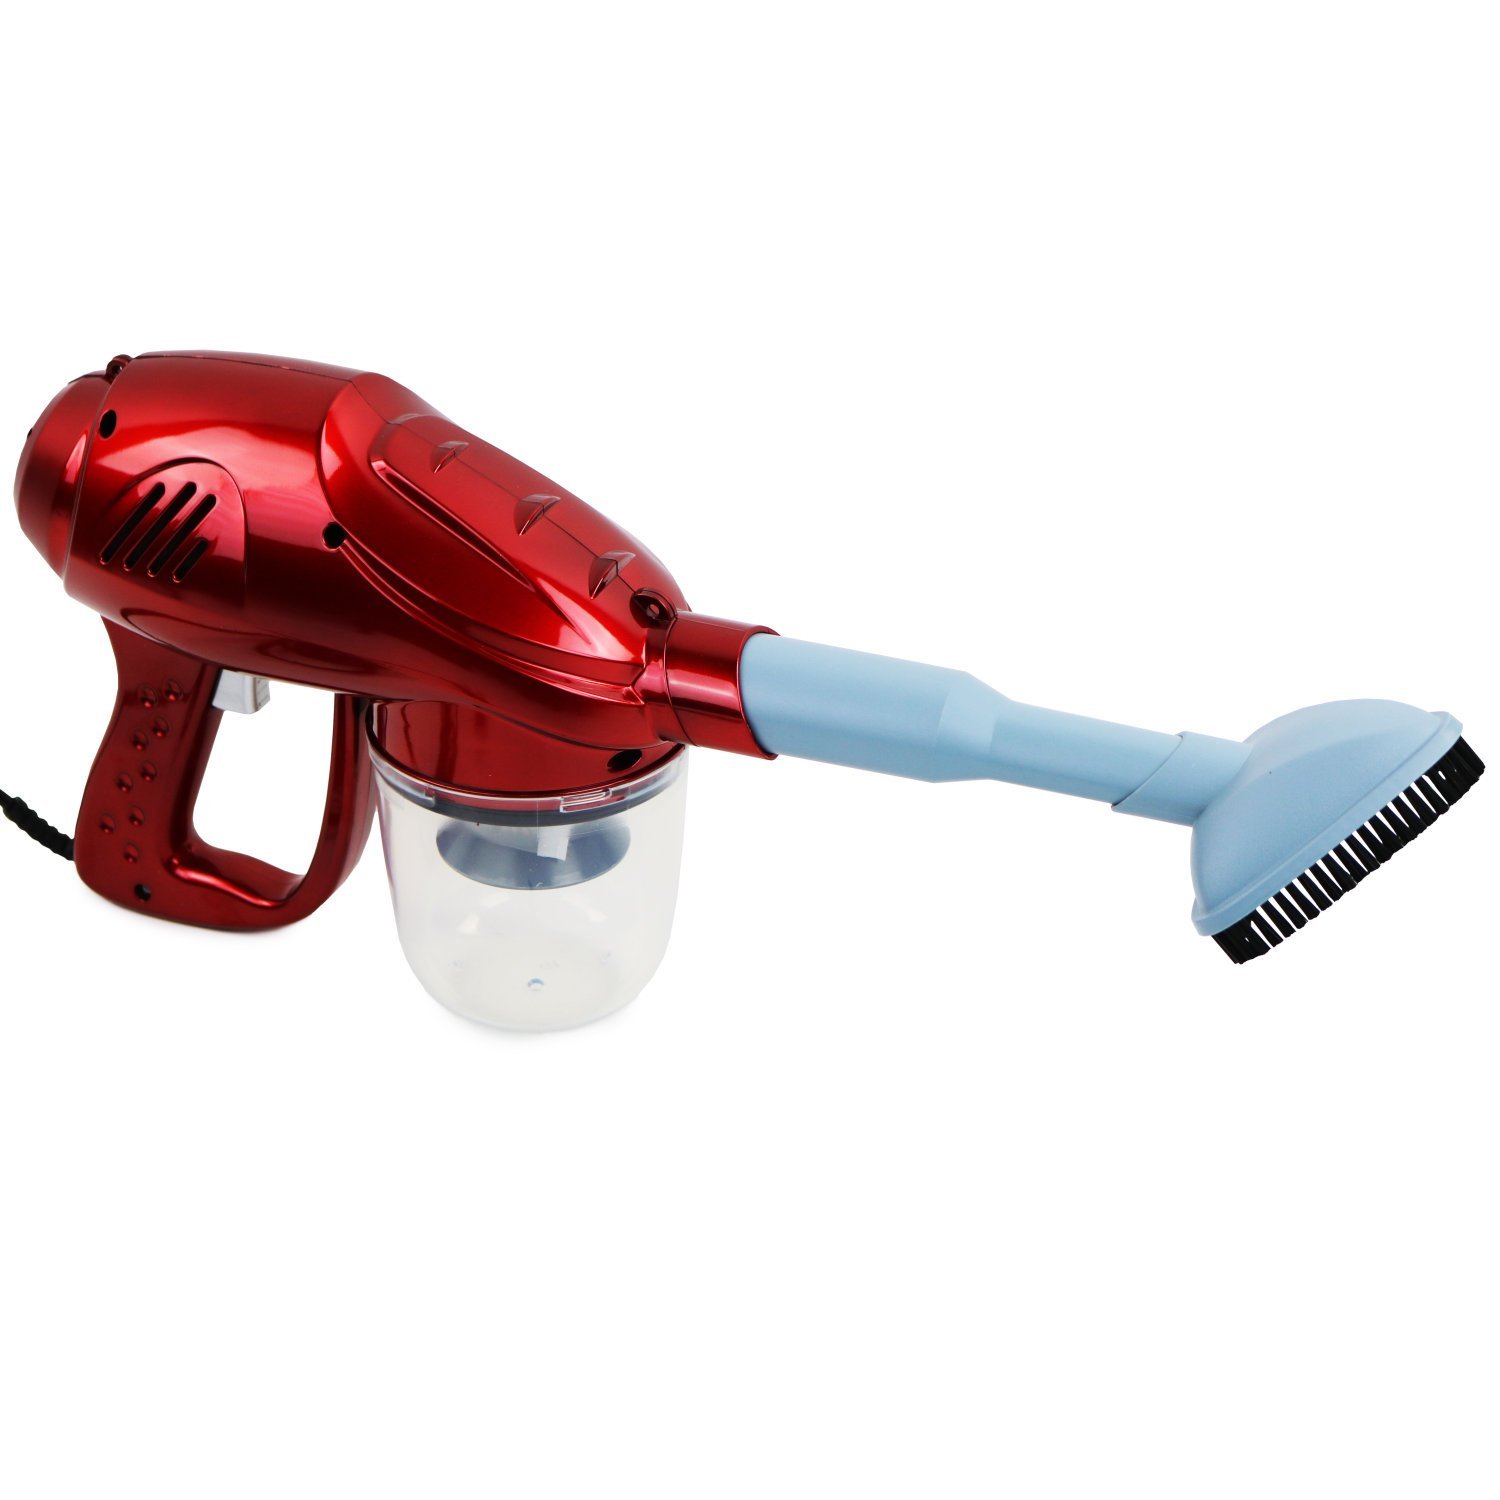 Maxi vac handheld cleaner 600w perfect for quick clean up vacuum 24 99 oypla stocking the